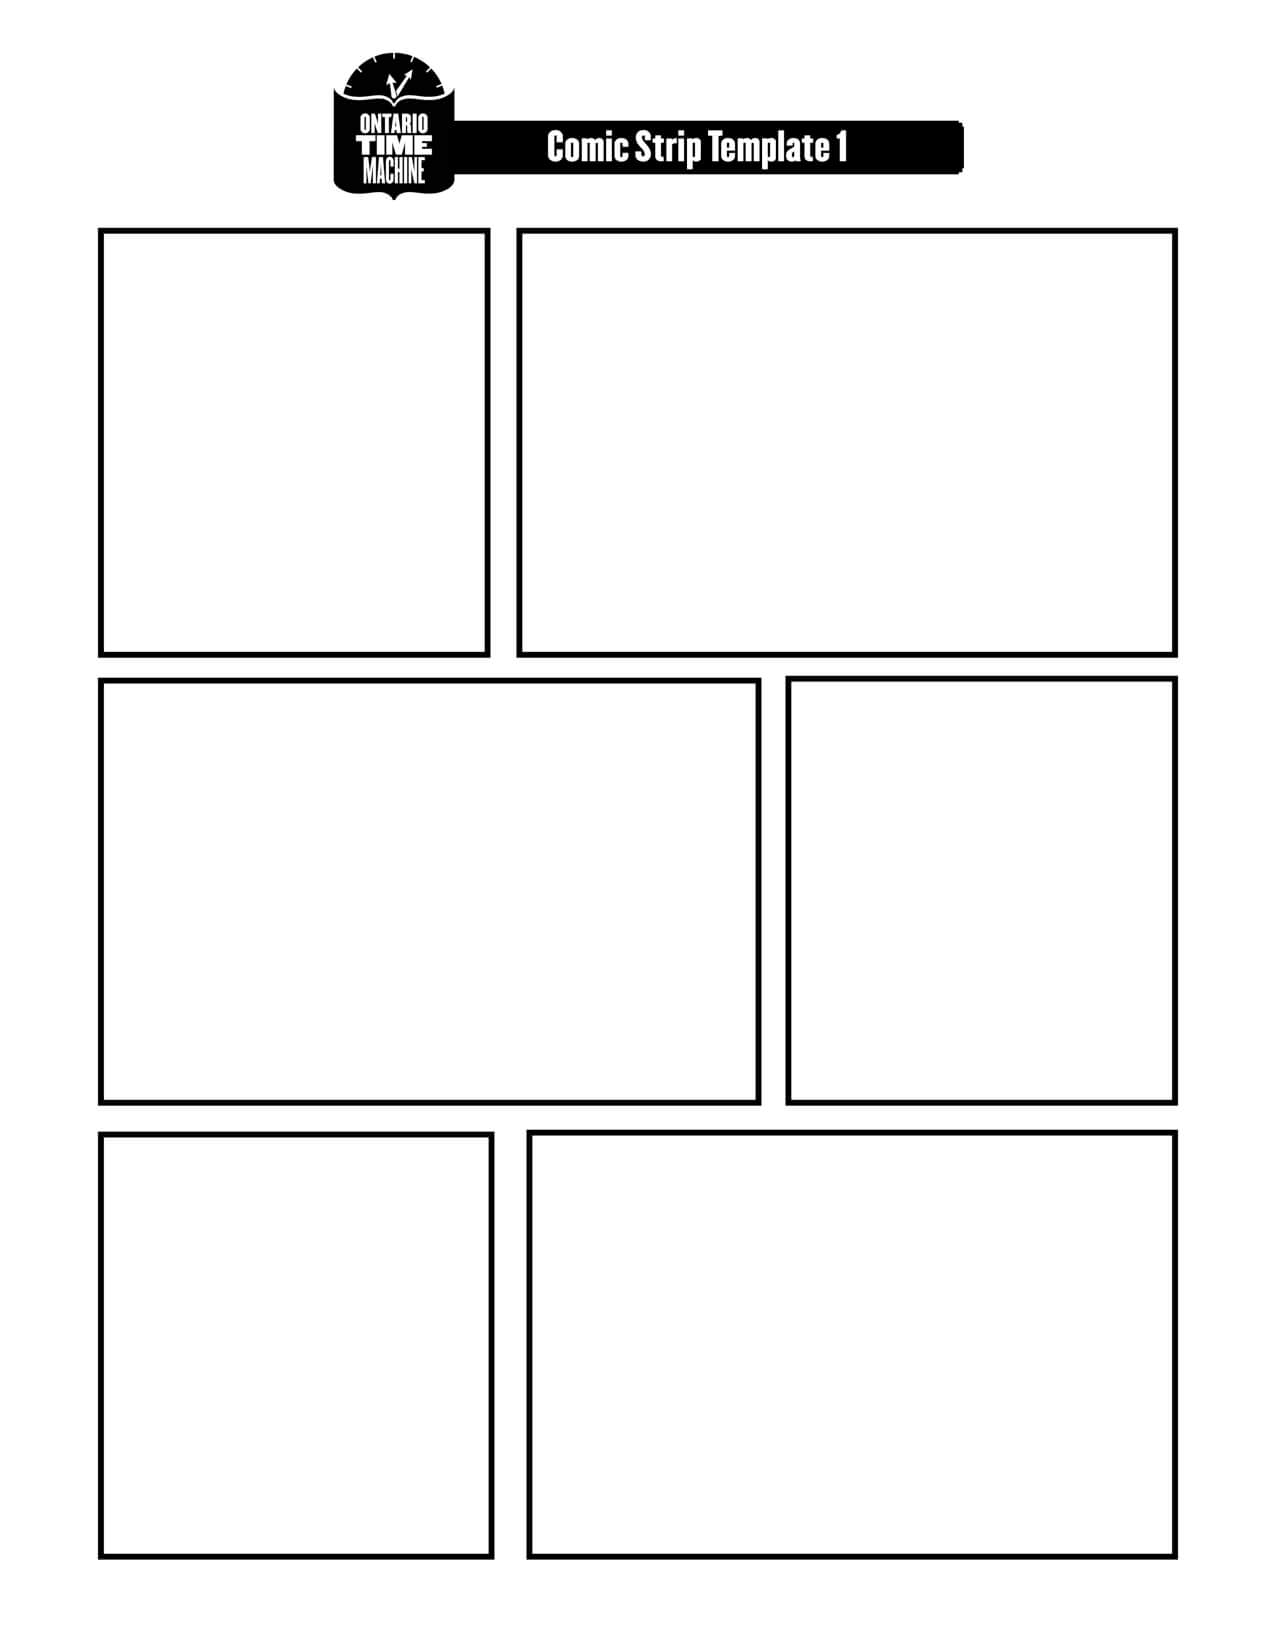 Cartooning Blanks Here Are A Few Ideas For You On Working On With Regard To Printable Blank Comic Strip Template For Kids